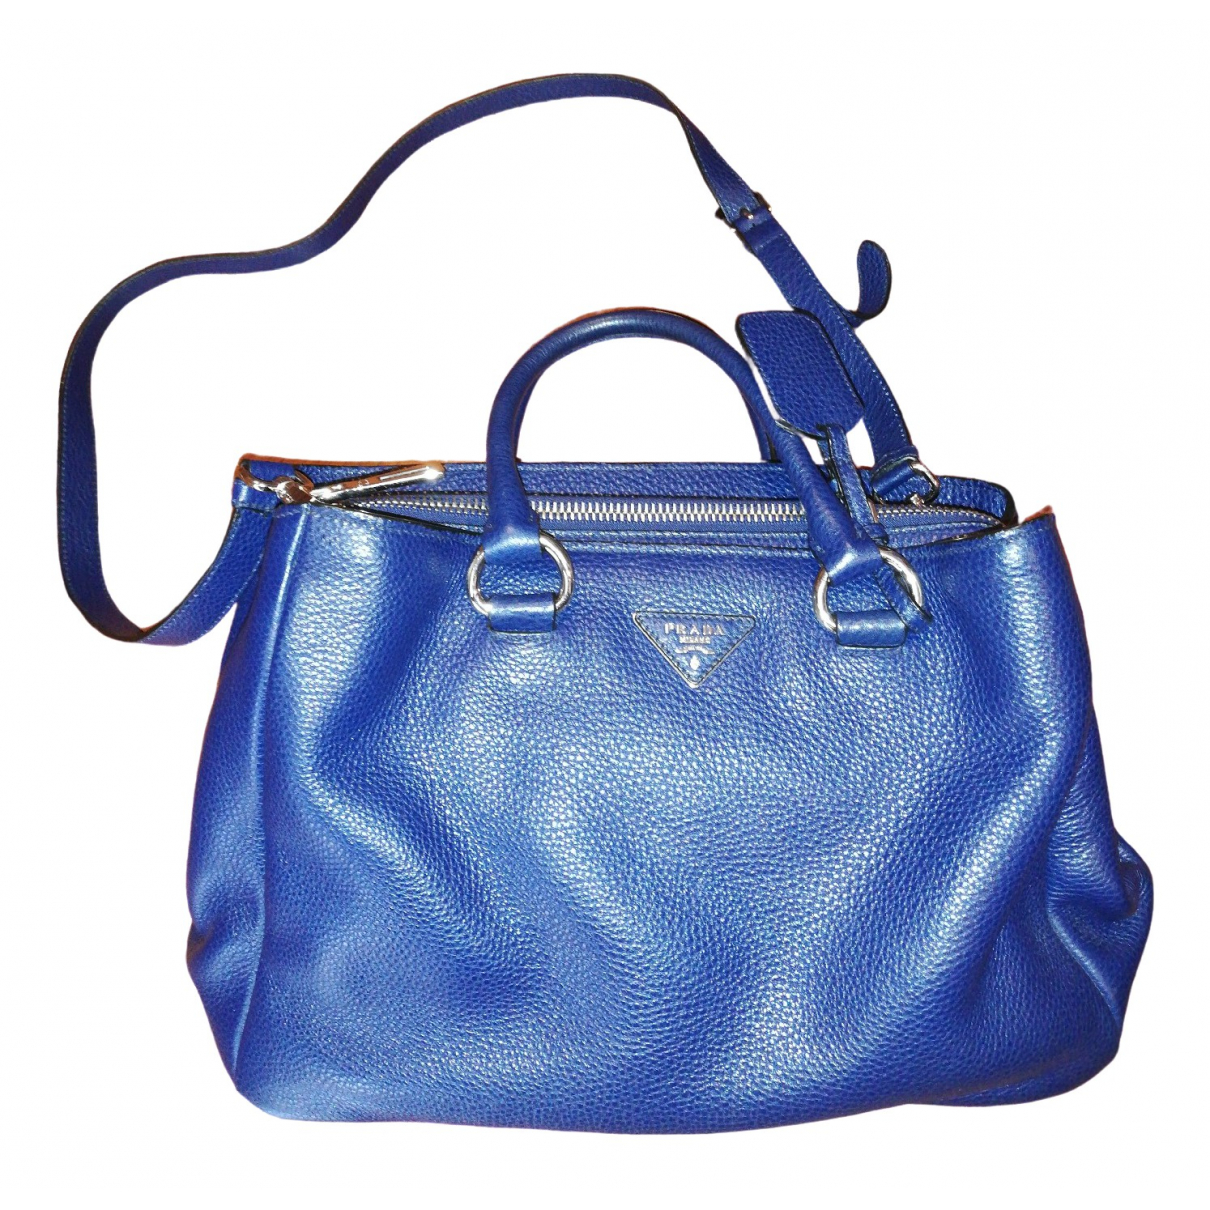 Prada \N Blue Leather handbag for Women \N